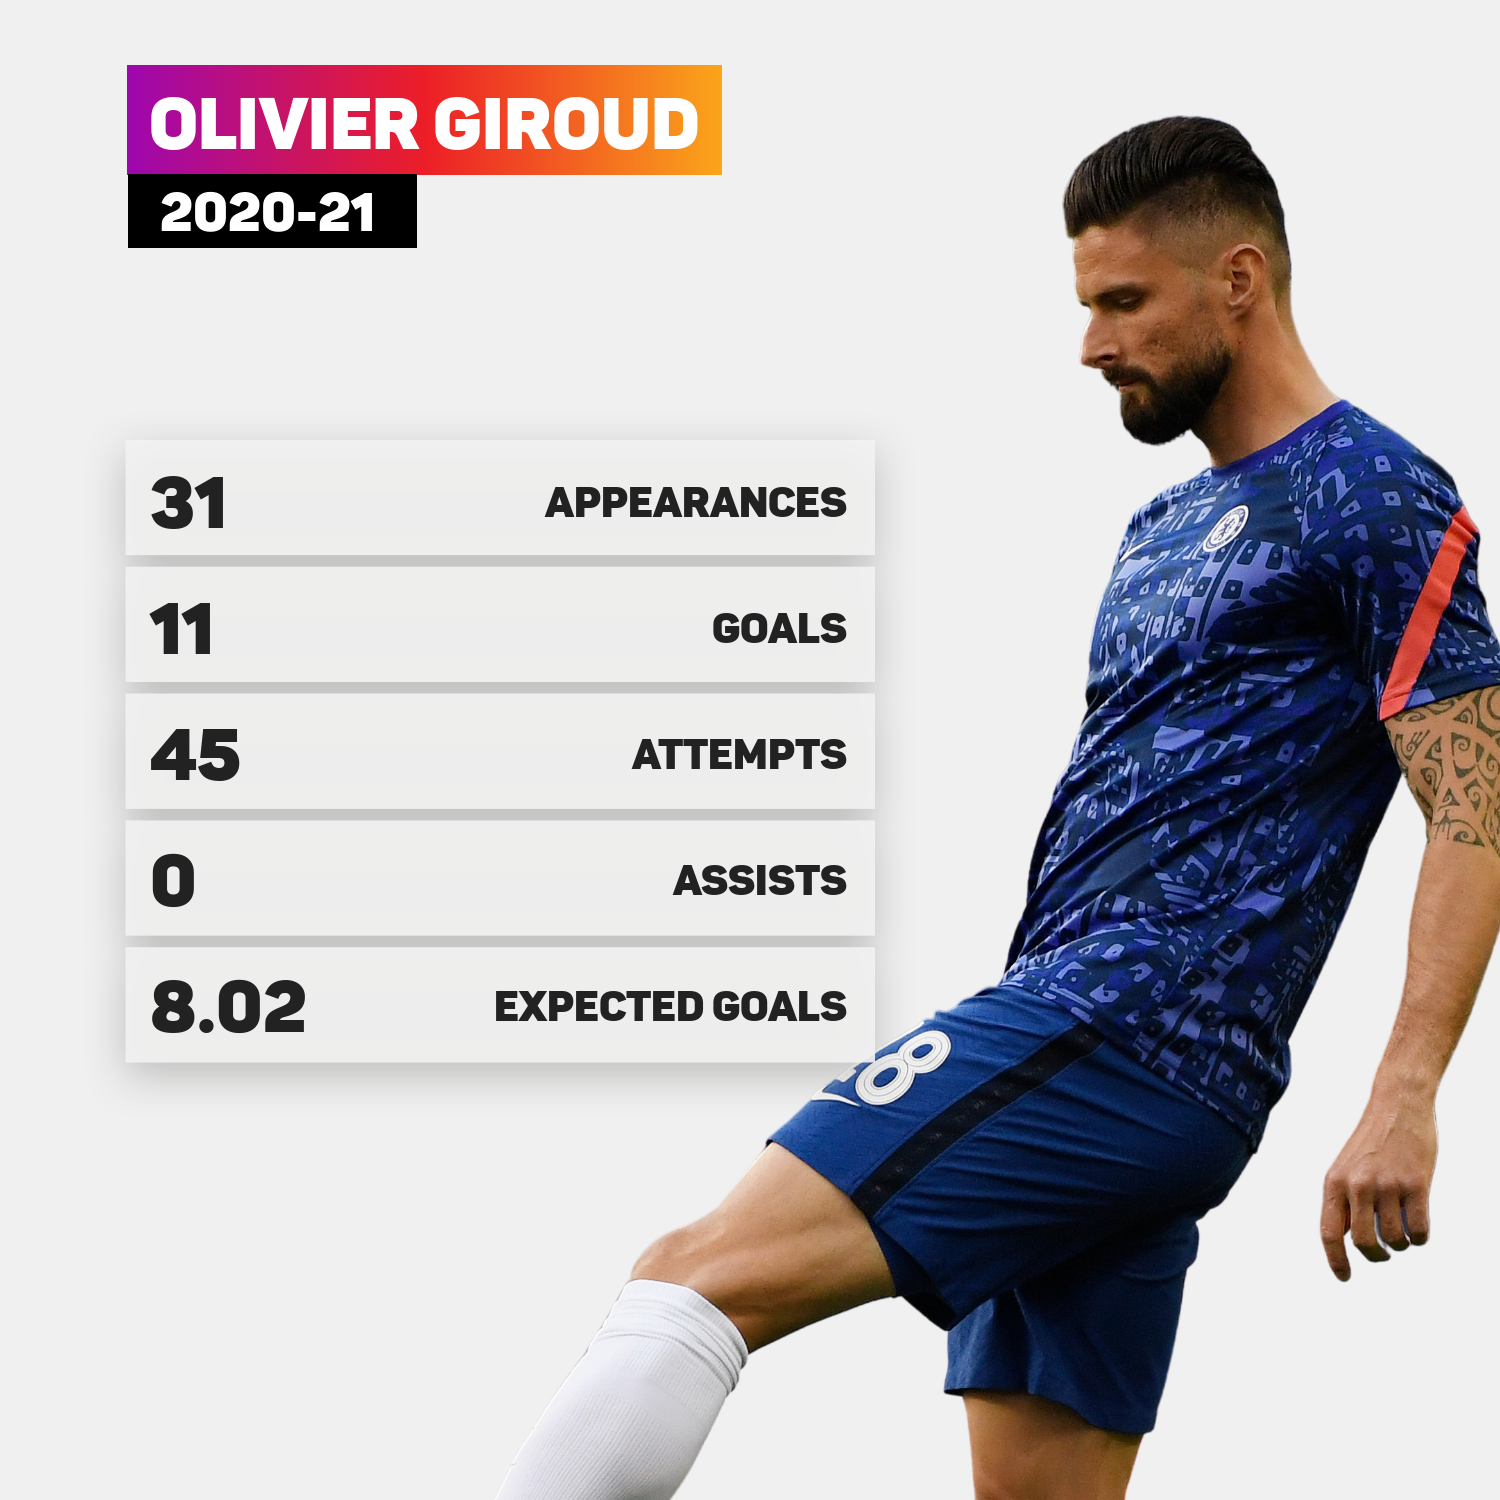 Olivier Giroud will add experience to Milan's attack